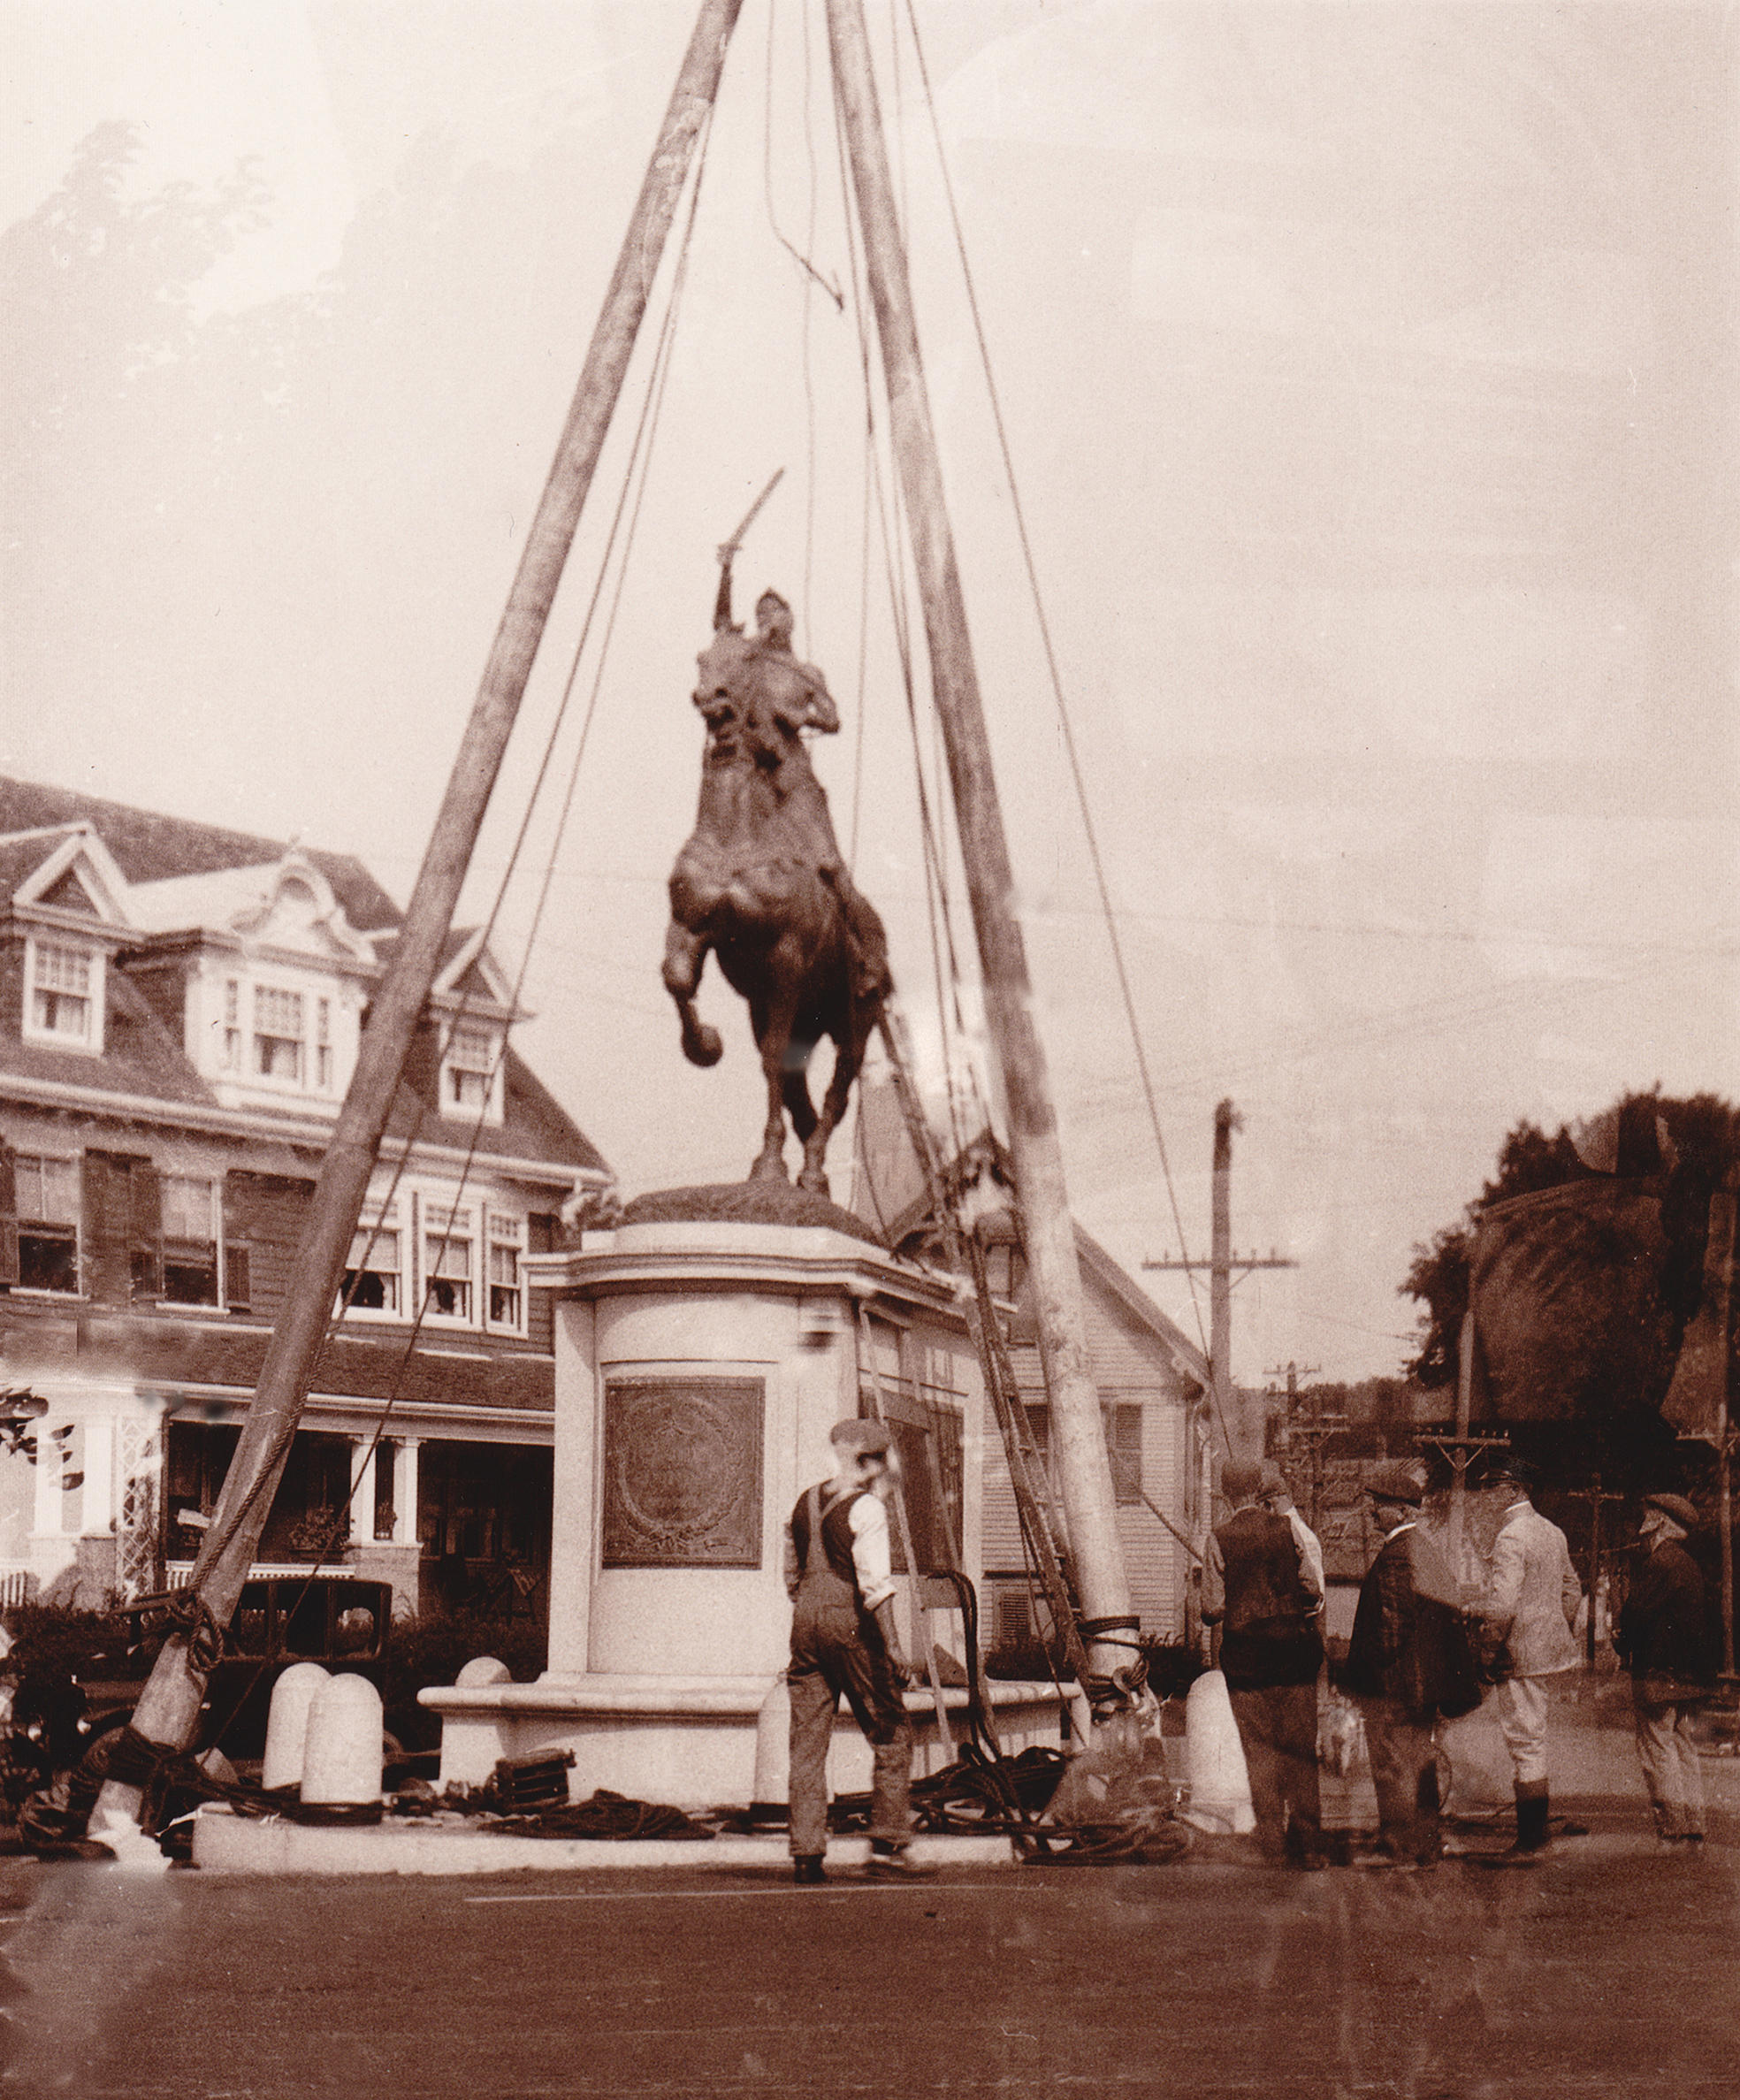 A photograph of builders placing a statue on a pedestal